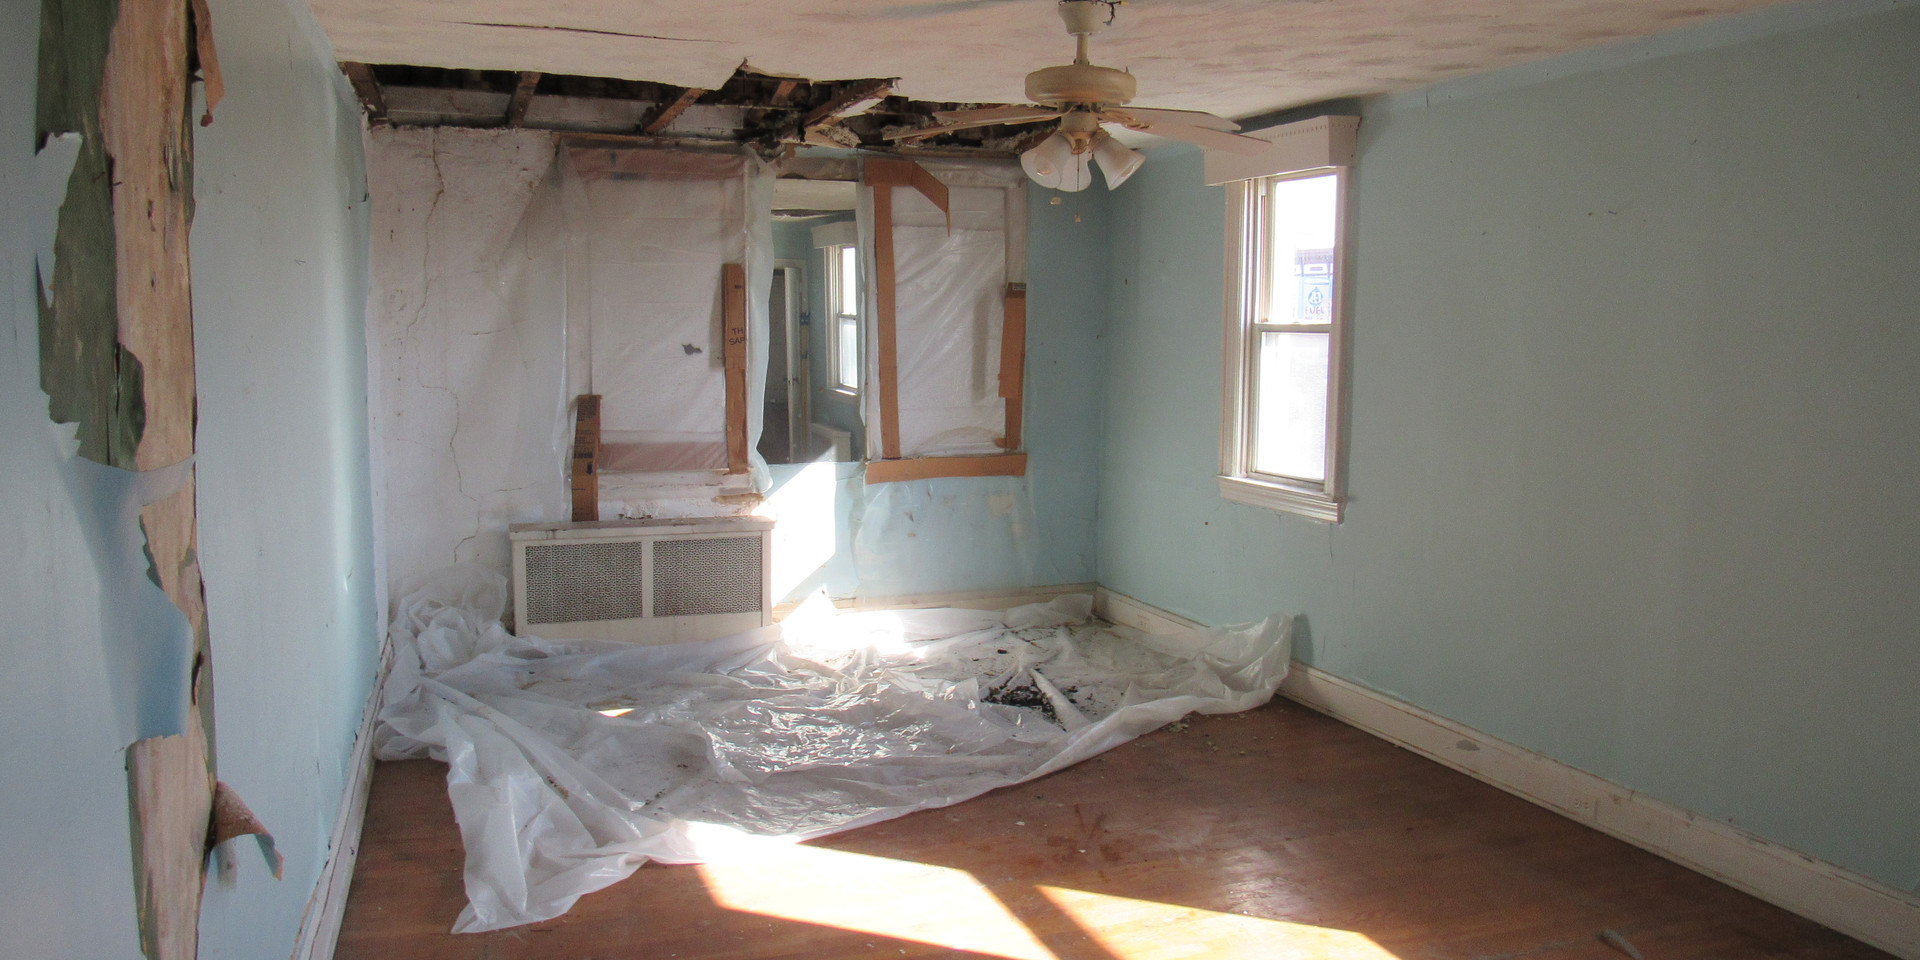 Ic Upstairs Bedroom2.JPG